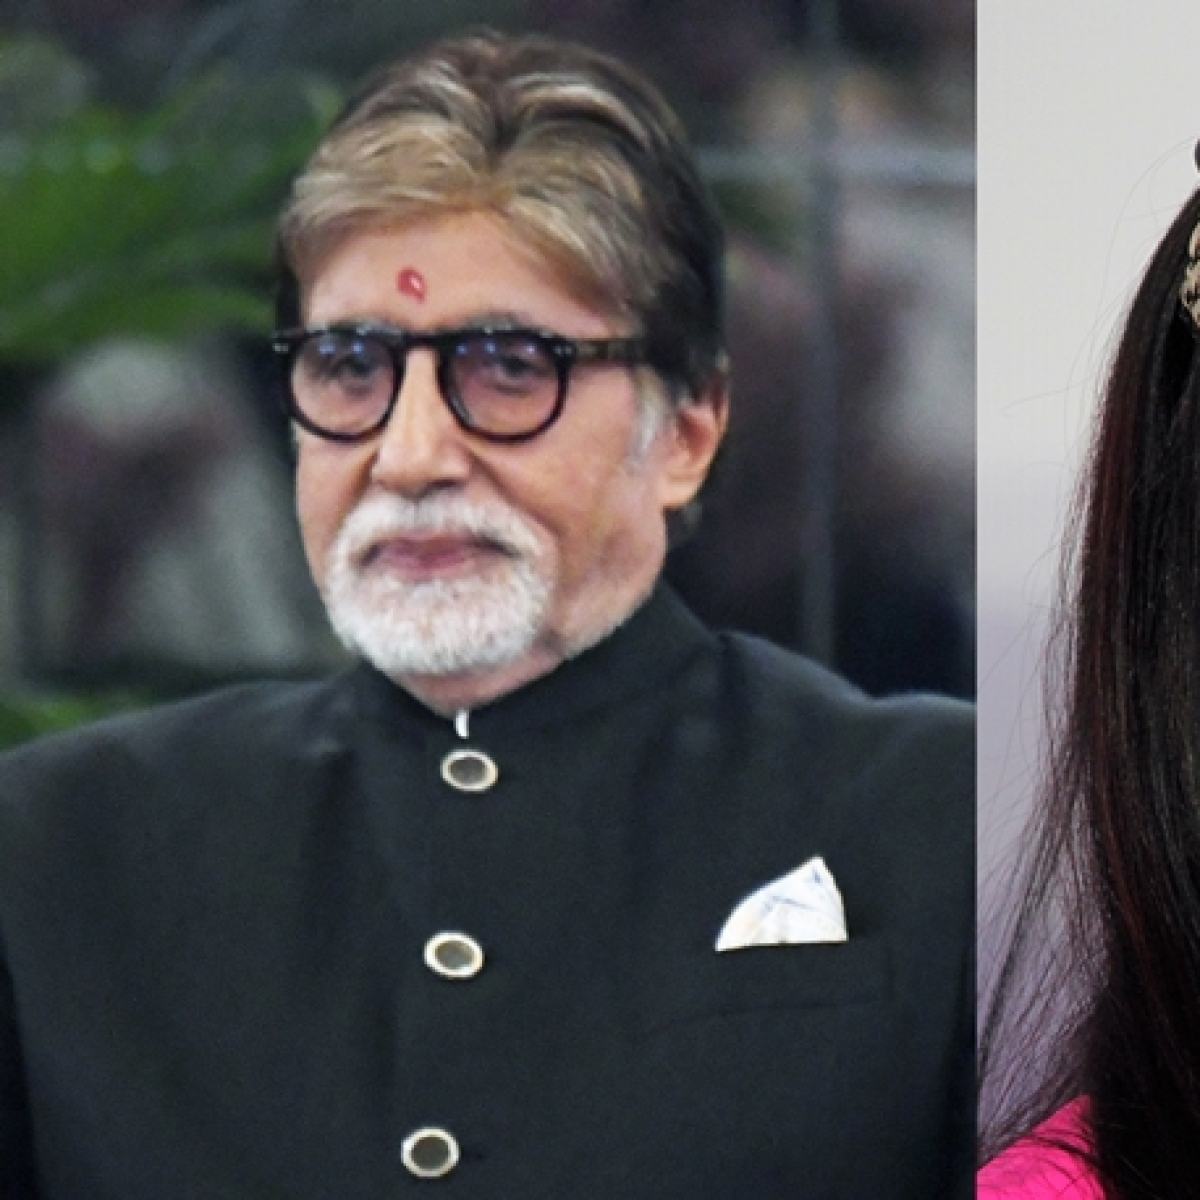 Troll asks Amitabh Bachchan 'Aishwarya kahan hai re buddhe?', check out his befitting reply